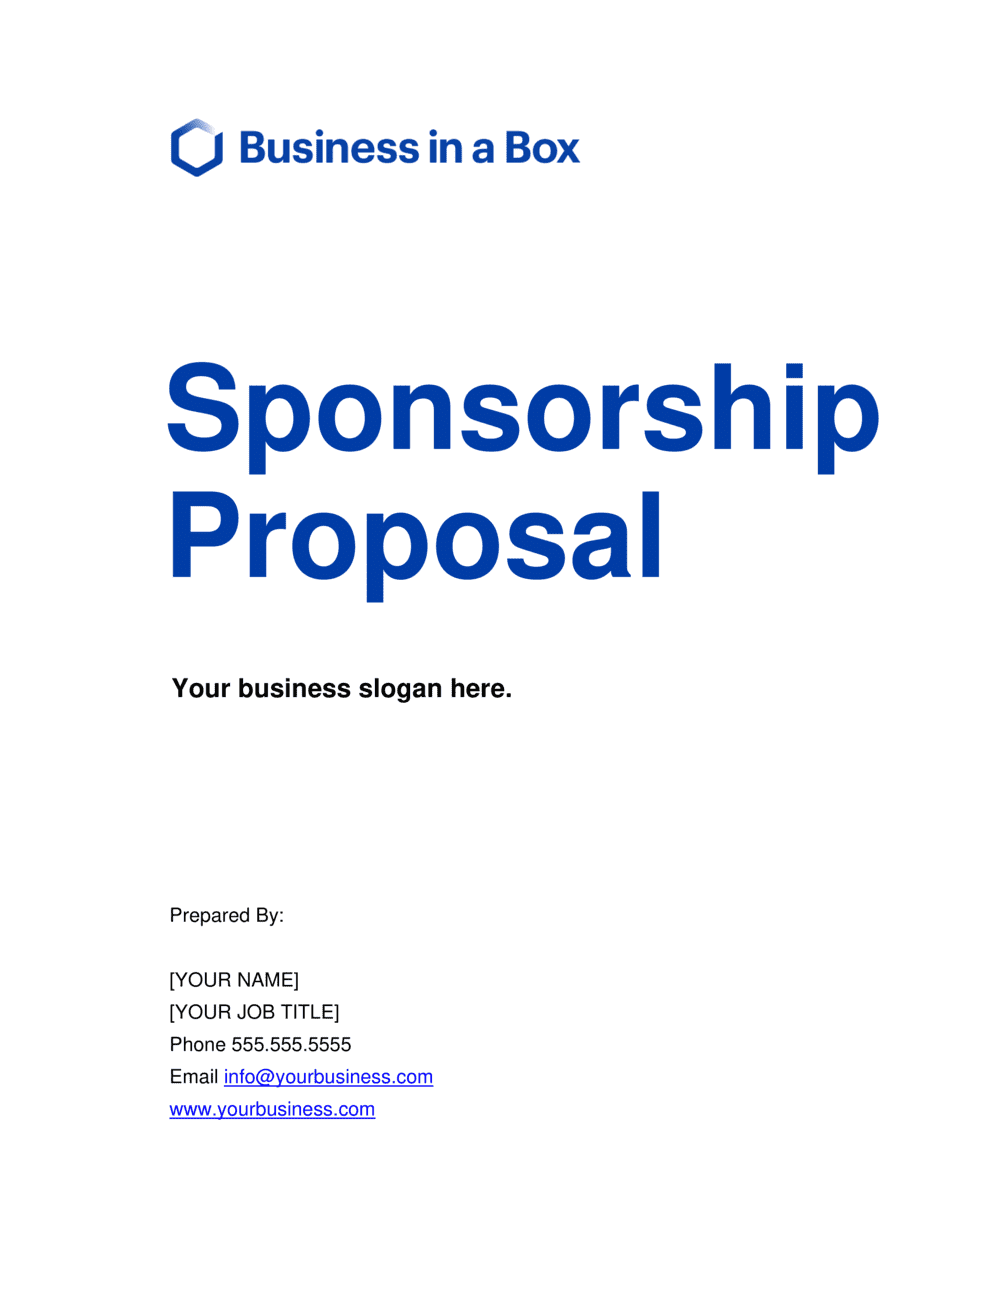 Business-in-a-Box's Sponsorship Proposal Template